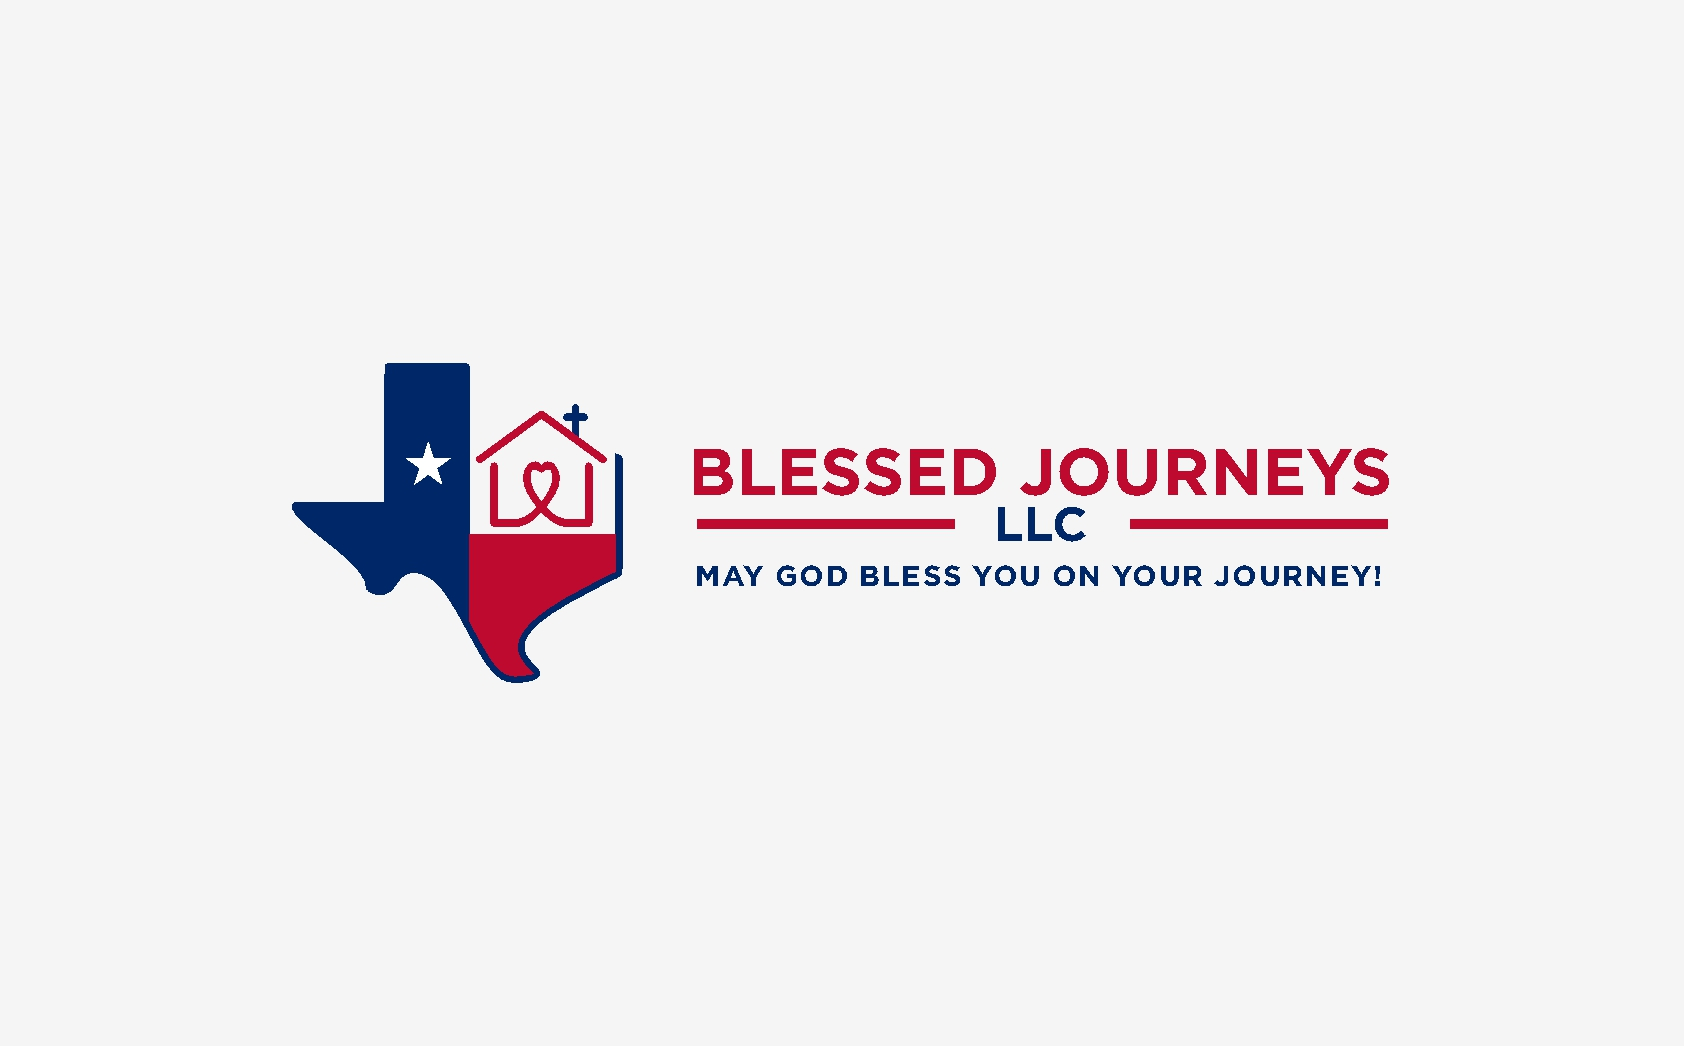 Blessed Journeys LLC | May God Bless you on your journey